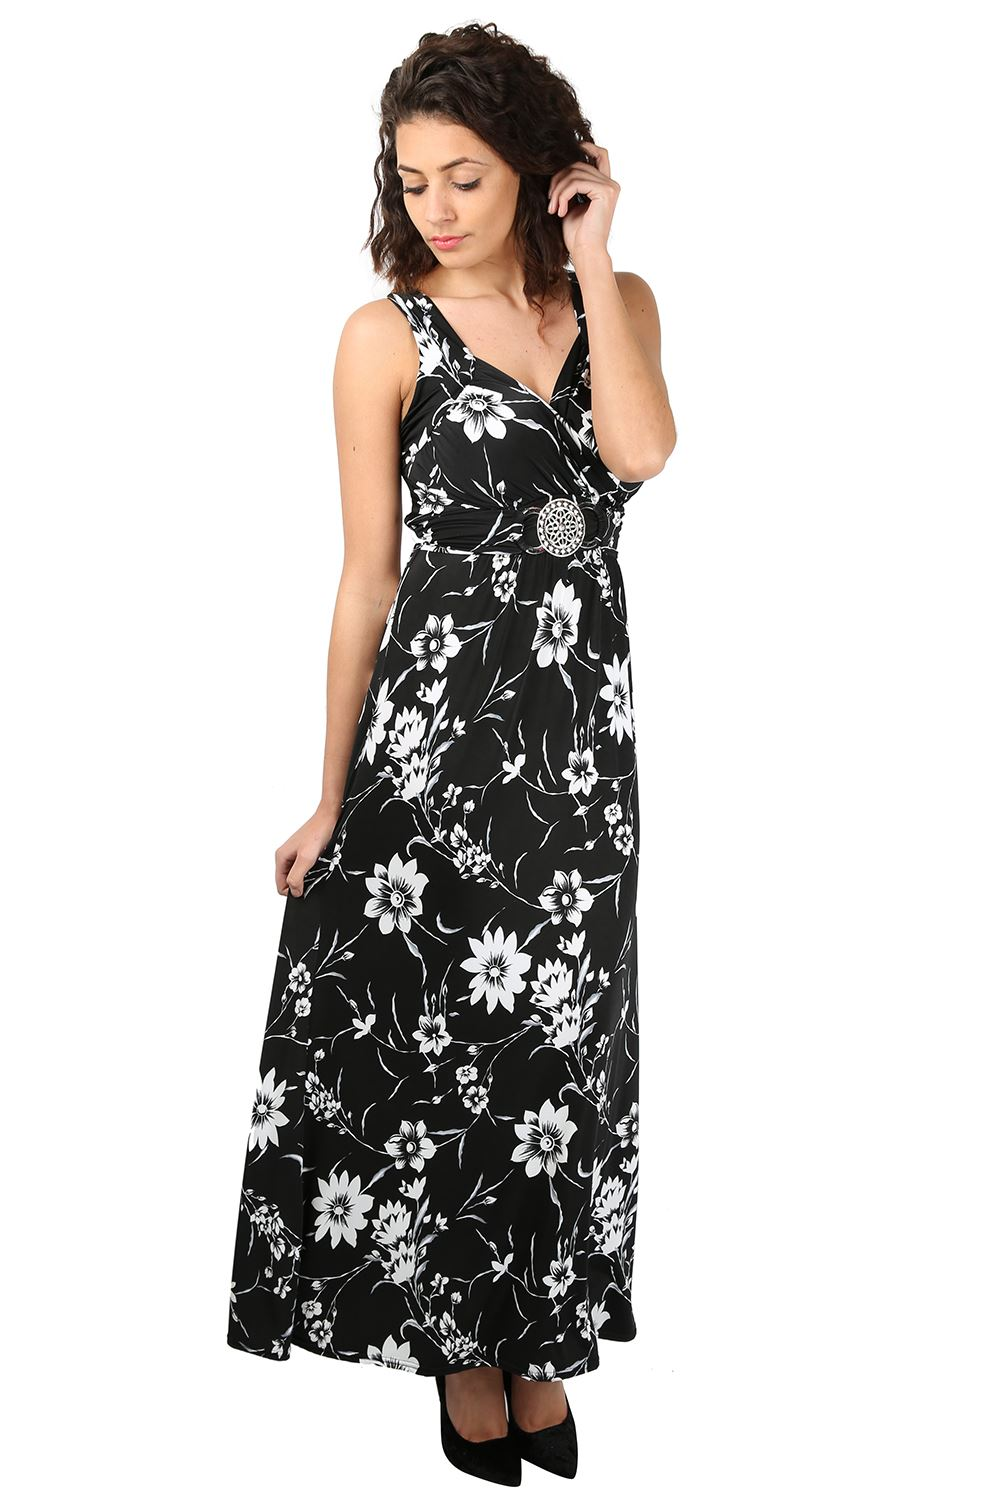 Womens Long Maxi Dress Ladies Sleeveless Daisy Floral ...